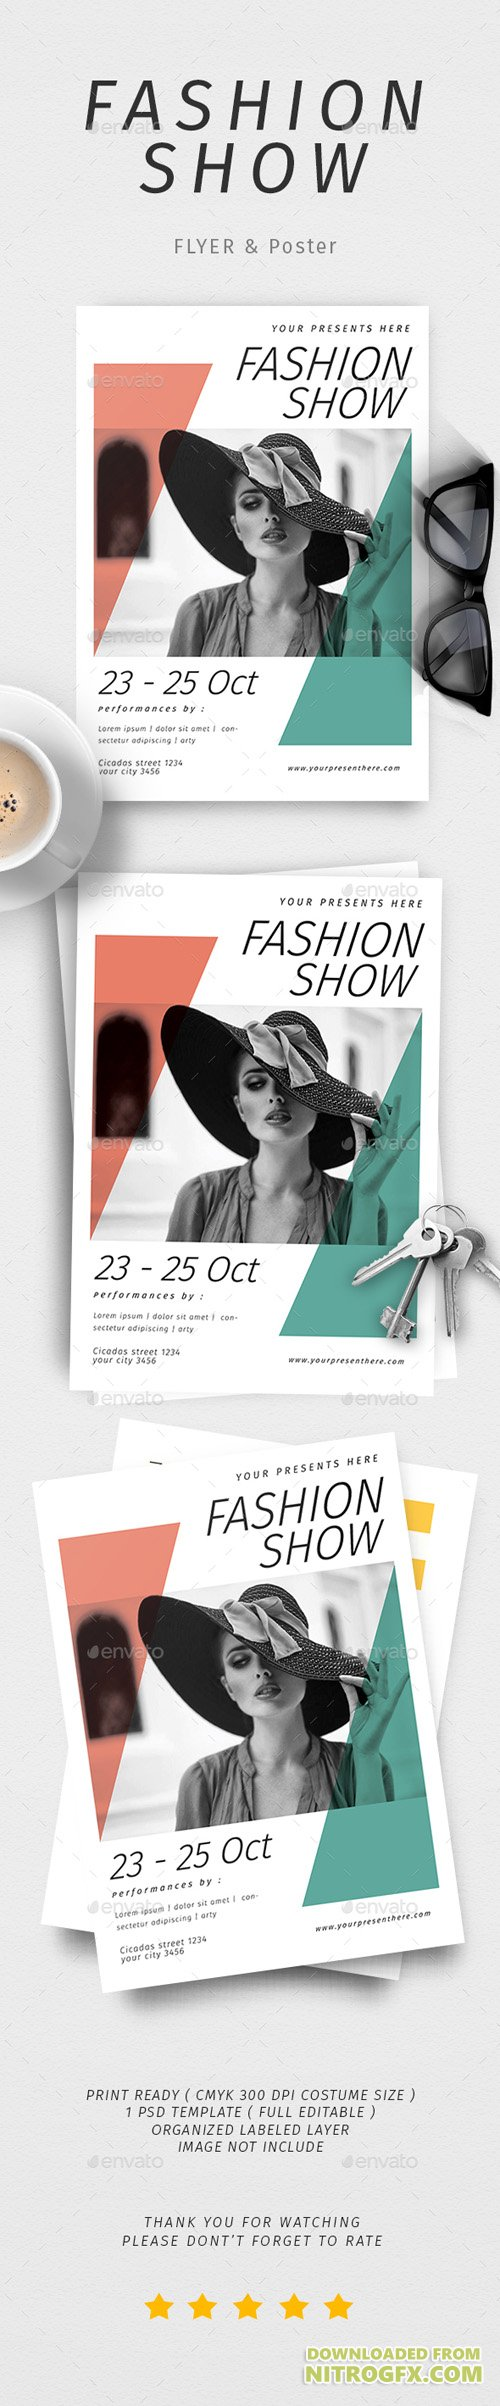 Fashion Show Poster & Flyer 20602753